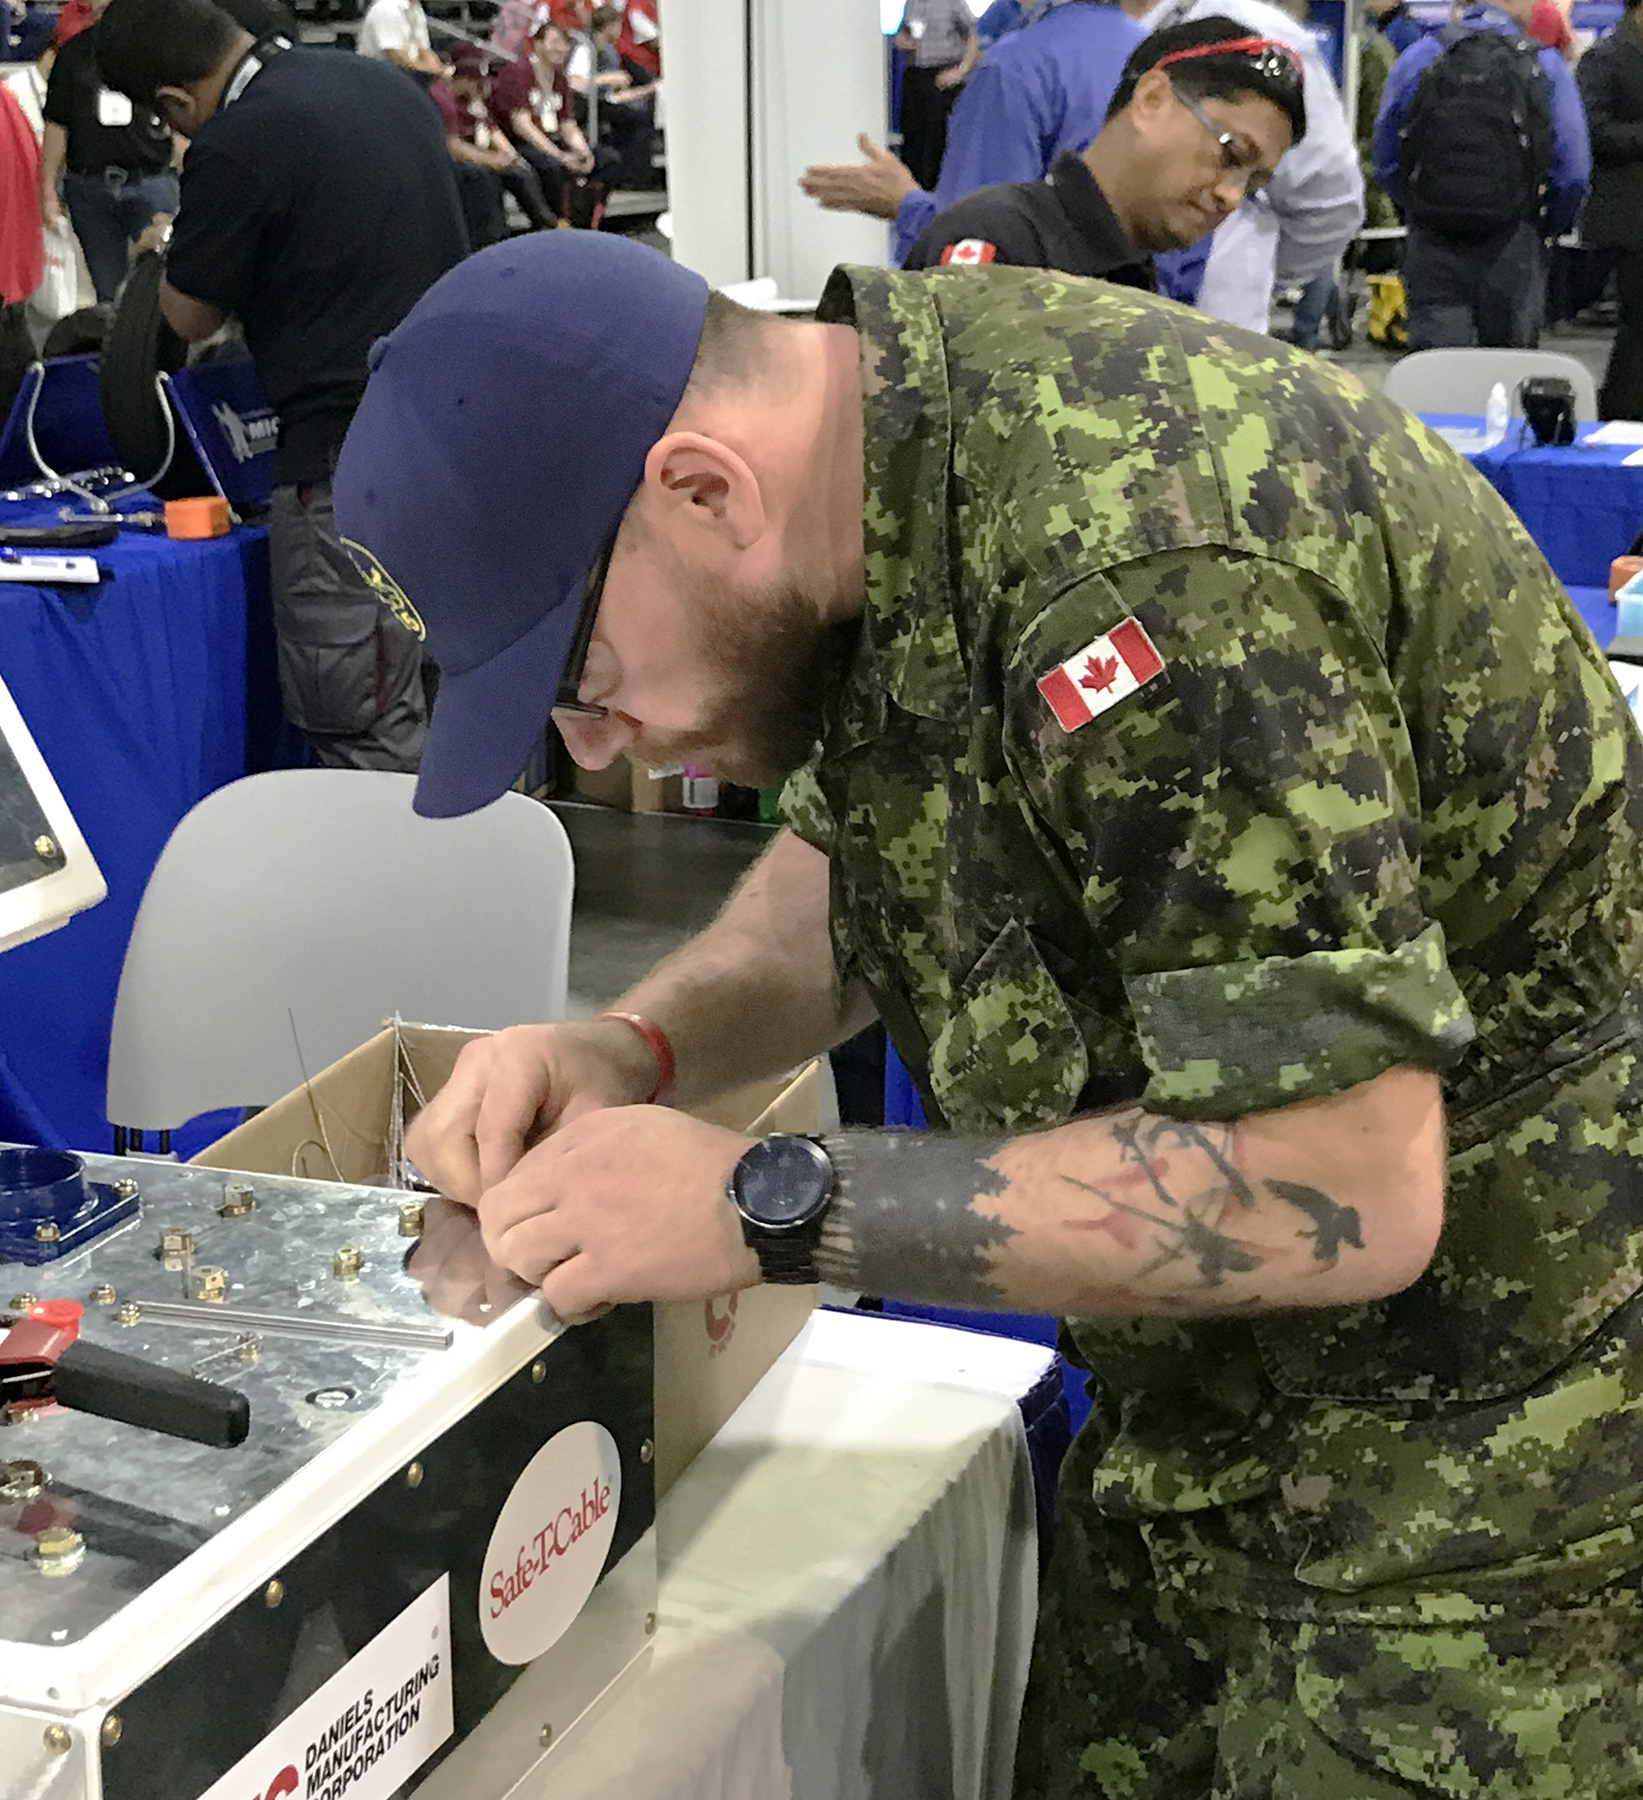 Corporal Jonas Nacinovich, AVN, from 435 Transport and Rescue Squadron, performs a task during the Aerospace Maintenance Competition held in Atlanta, Georgia, April 8-11, 2019 PHOTO: RCAF